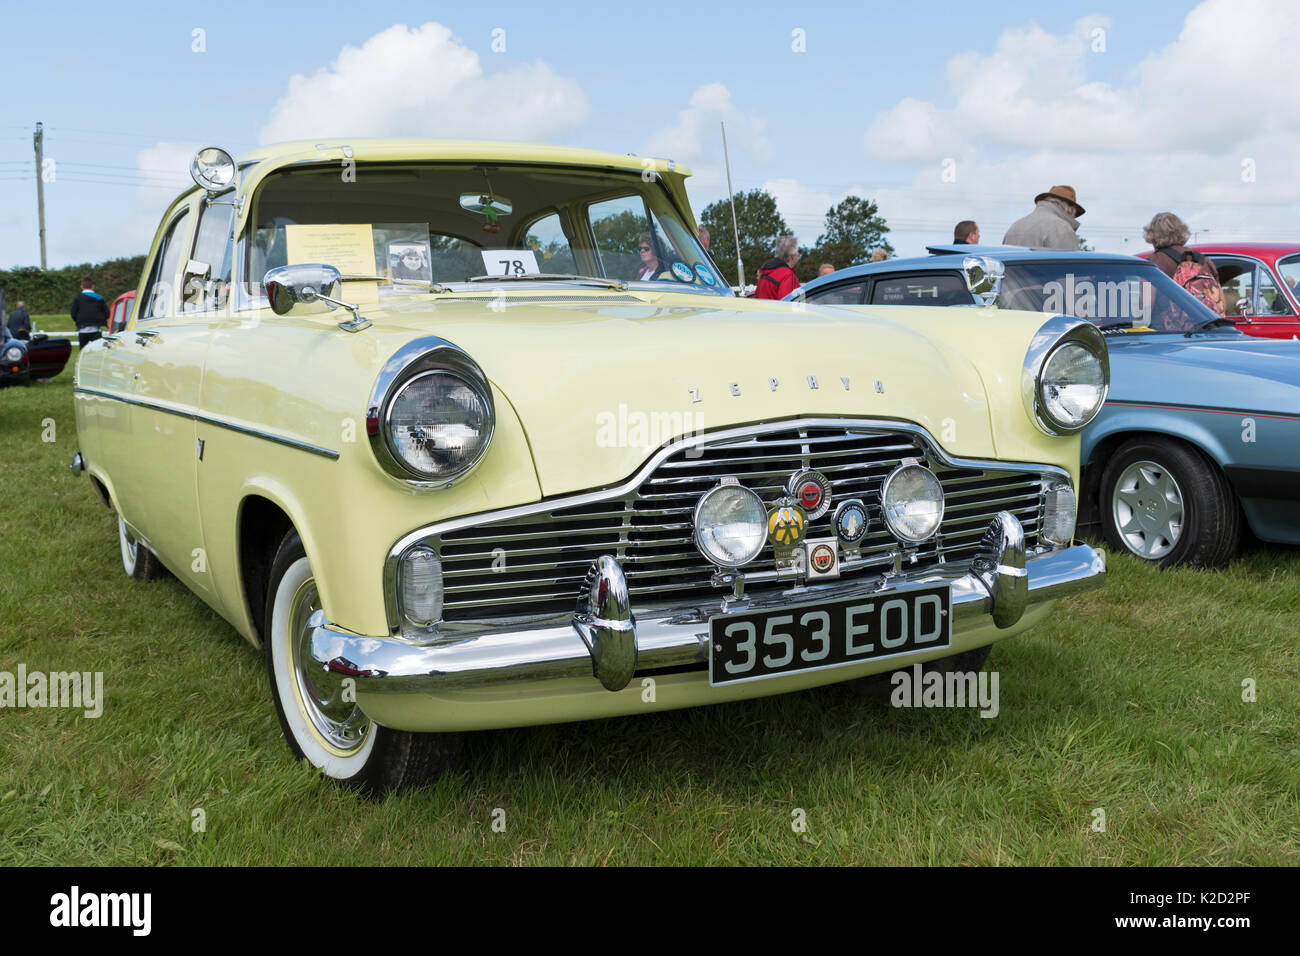 a 1960 ford zephyr six lowline stock photo 156410199 alamy. Black Bedroom Furniture Sets. Home Design Ideas